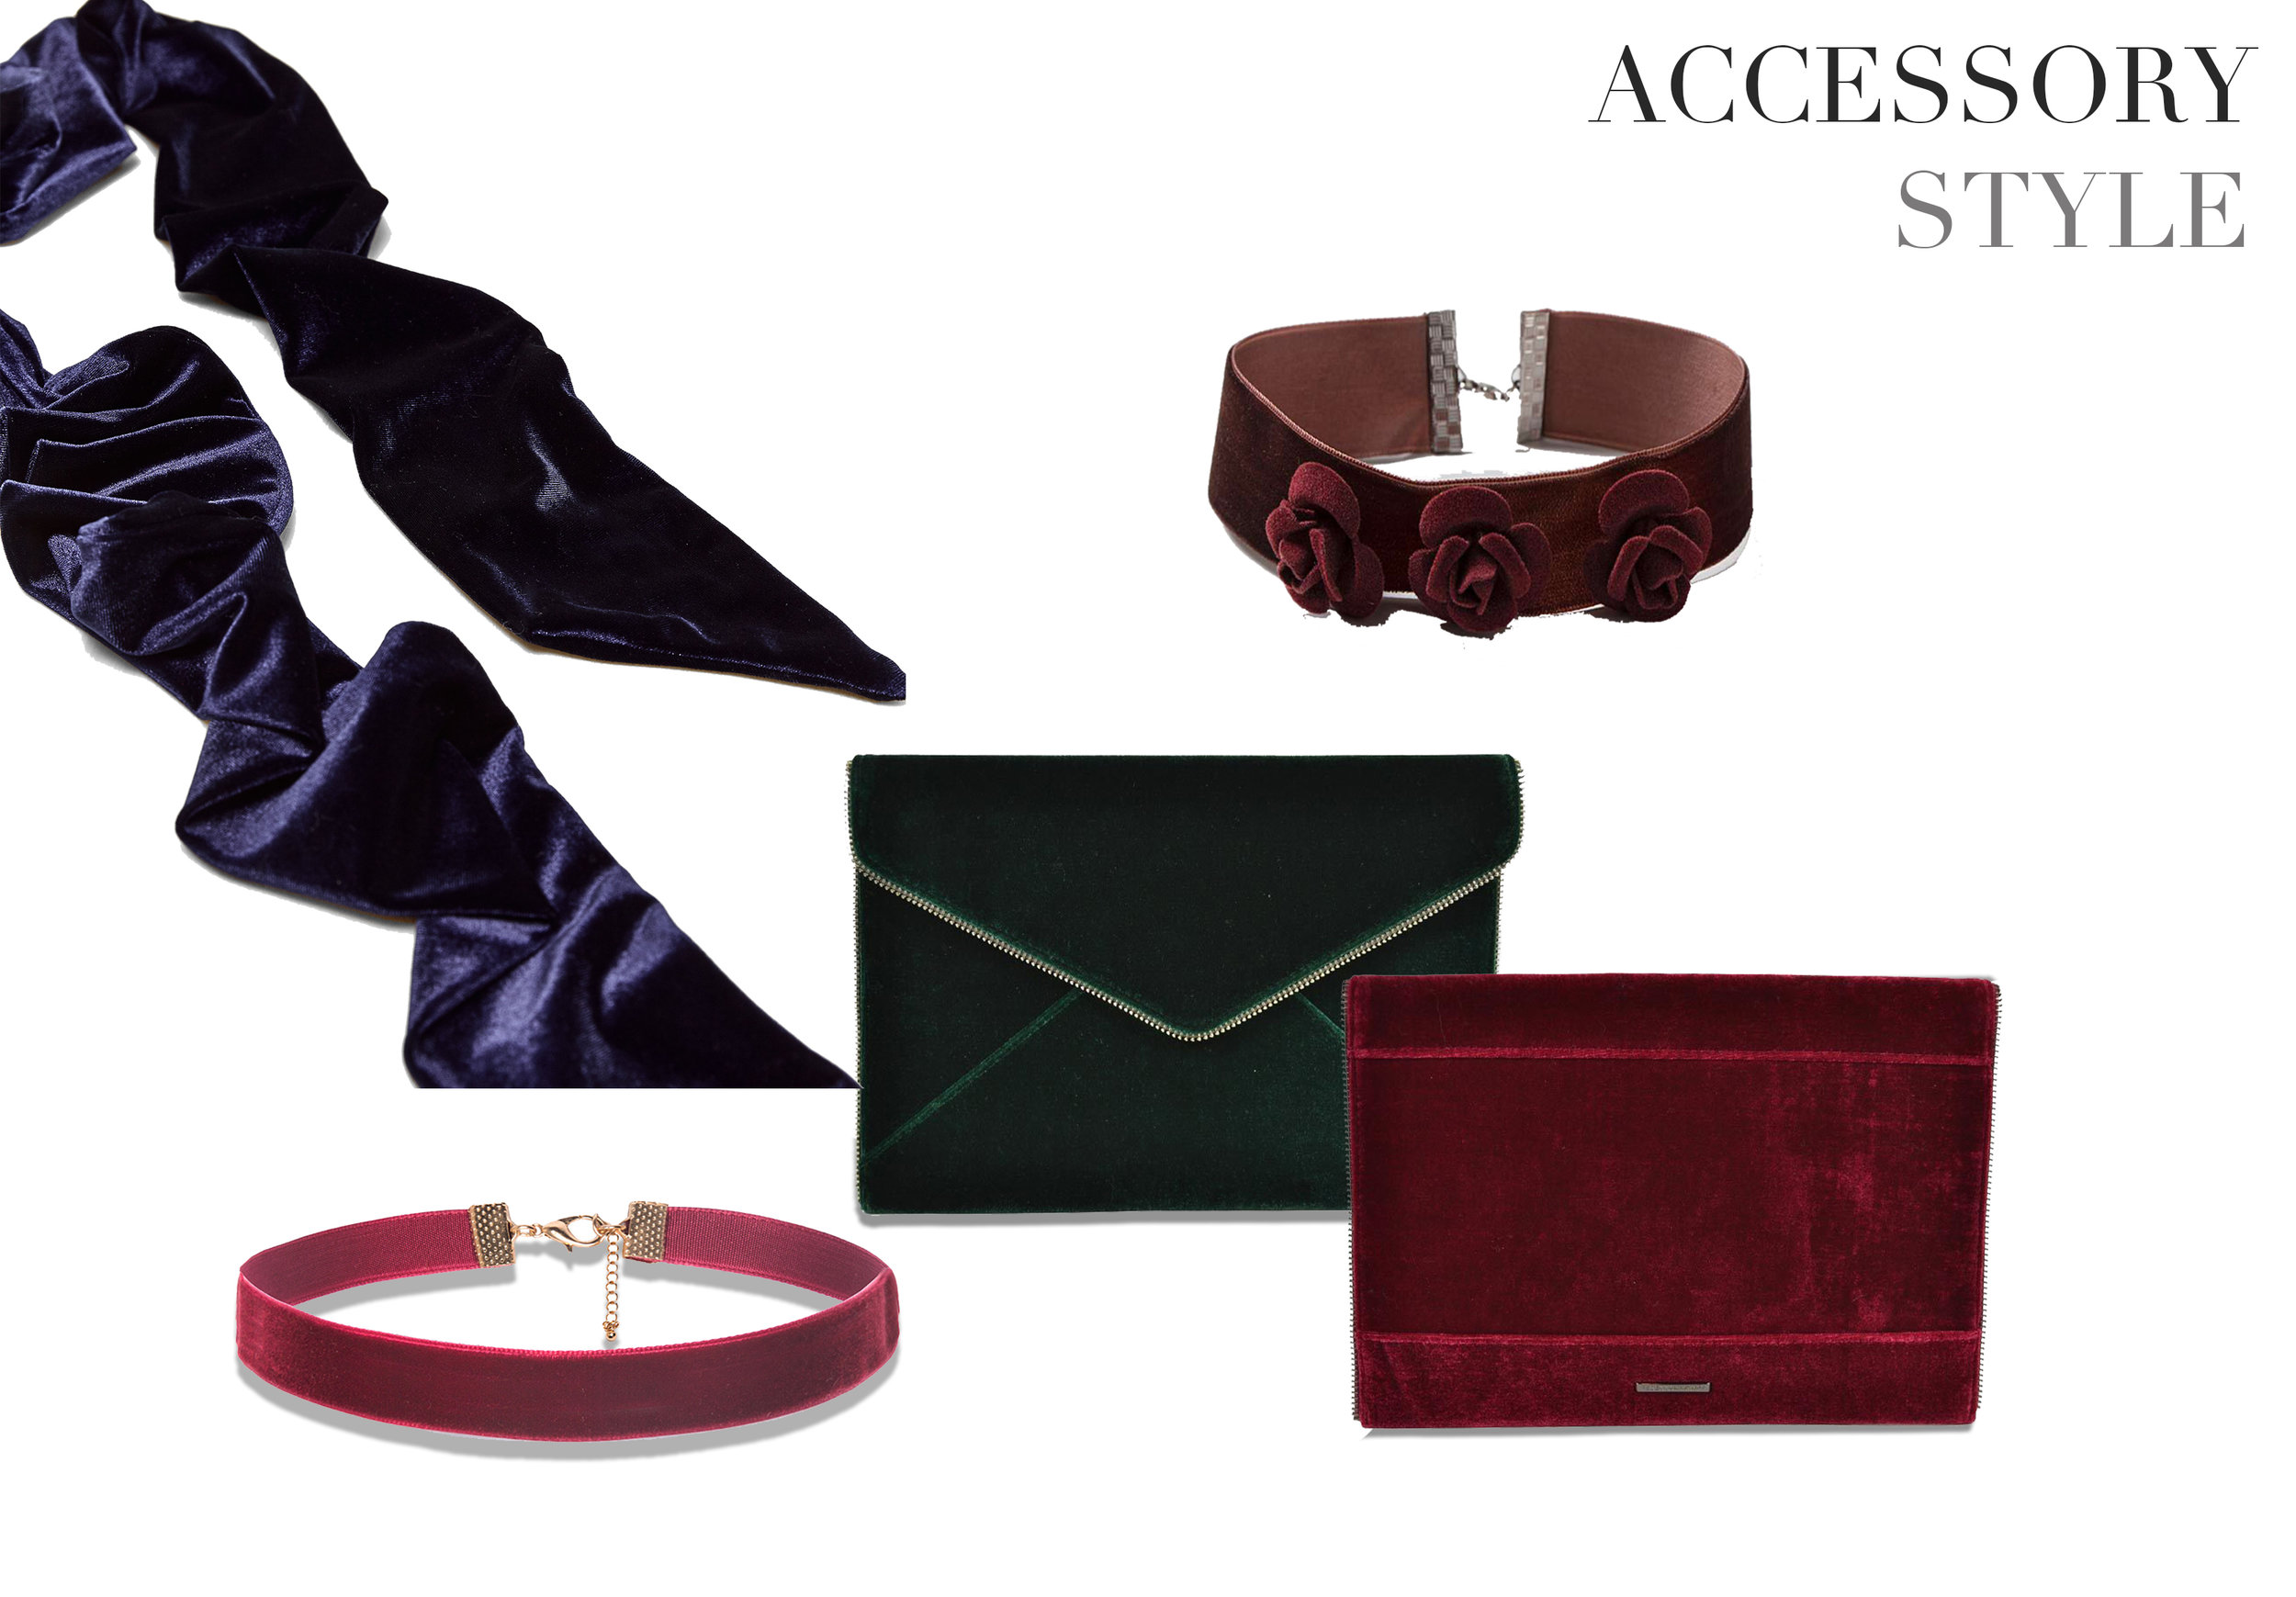 Try a velvet clutch with your staple LBD in festive hunter green or ruby red. If you don't want to fully commit, a simple velvet choker allows you to dip your toe in the velvet trend.      Simple Velvet Choker      Blue Scarf      Floral Choker      Evergreen Green Clutch      Soft Berry Red Clutch